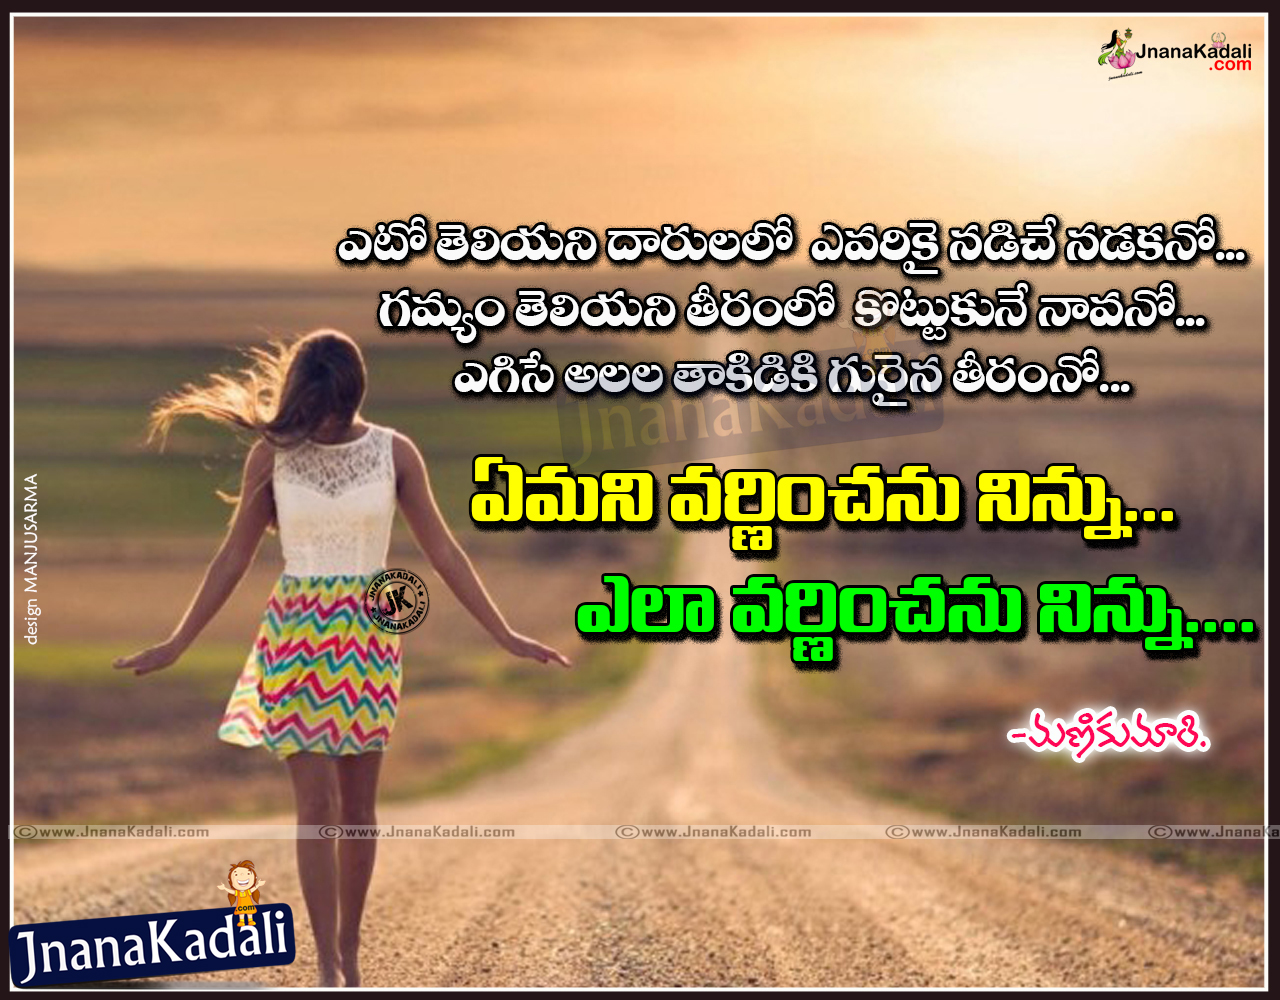 Sad Quotes About Love Failure : ... Love Quotes in Telugu. Love Failure Quotes and Sad Love Quotes with Hd